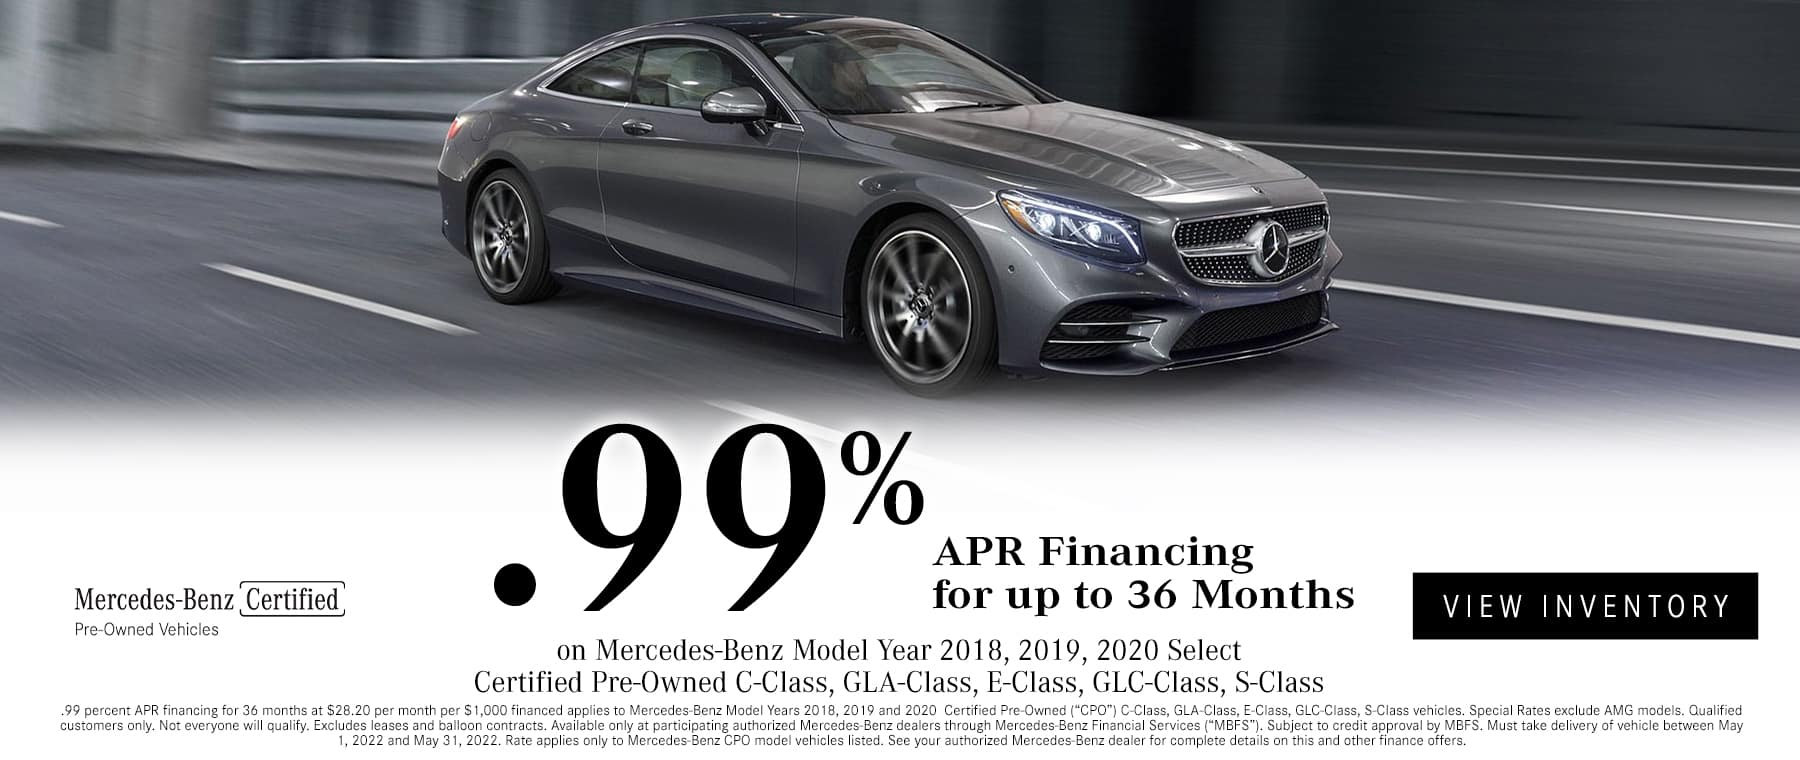 Used vehicles, certified pre owned, special, deal, sale on mercedes benz